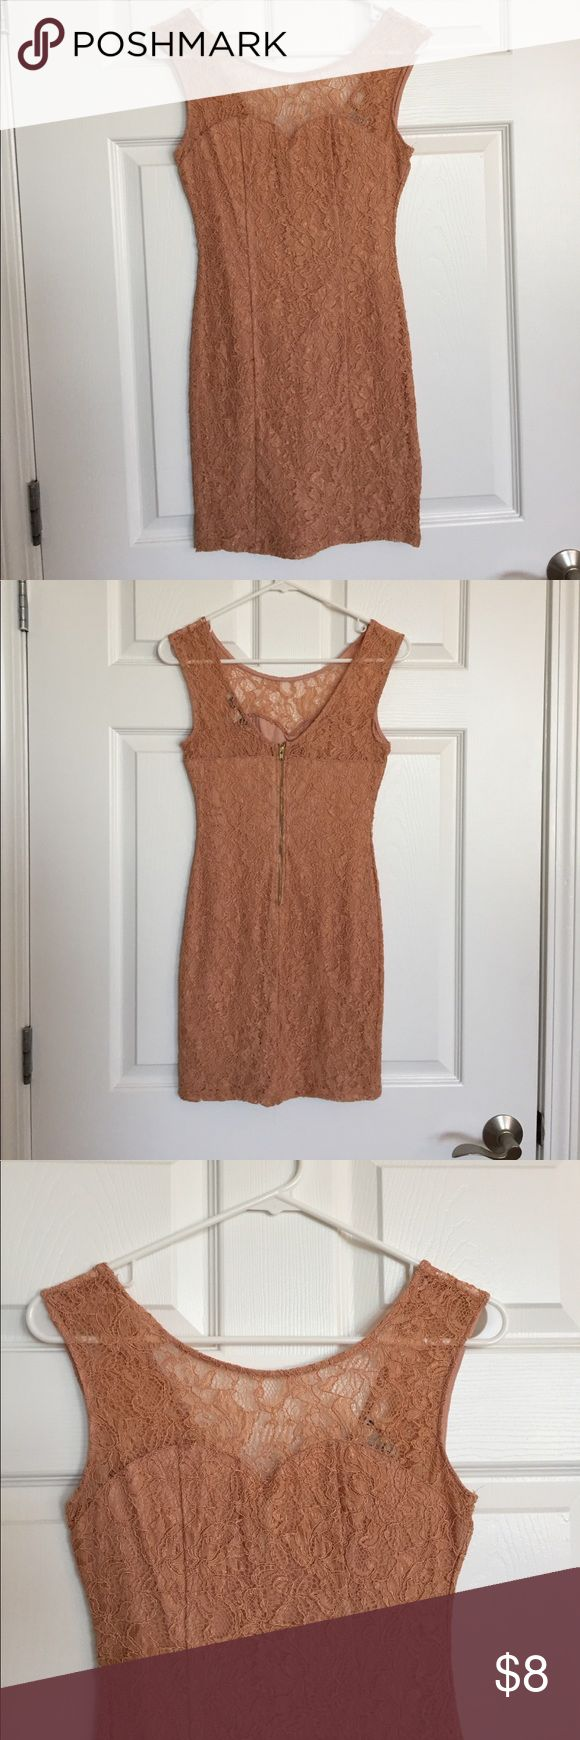 Nude lace dress Tight lace dress in a pretty neutral color. Is see through up top with a sweetheart neckline. Perfect for a night out. Gently used! Forever 21 Dresses Mini